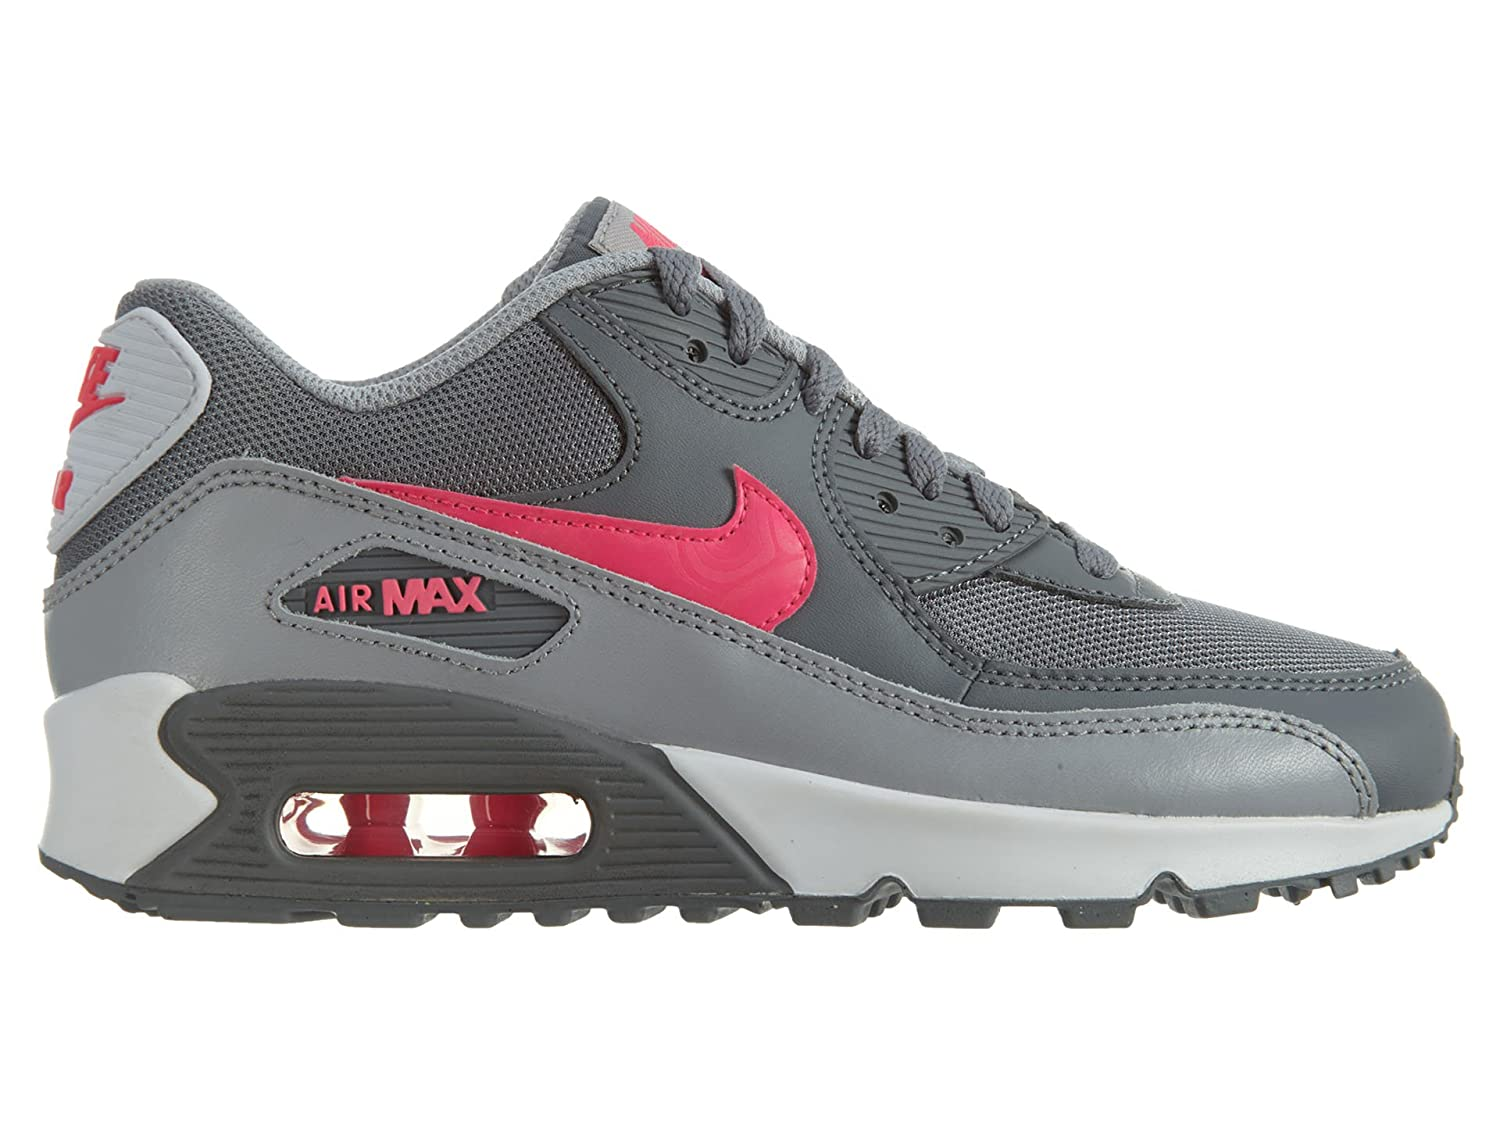 Nike Unisex Kids  Air Max 90 Mesh Low-Top Grey  Amazon.co.uk  Shoes   Bags 9ec613e40